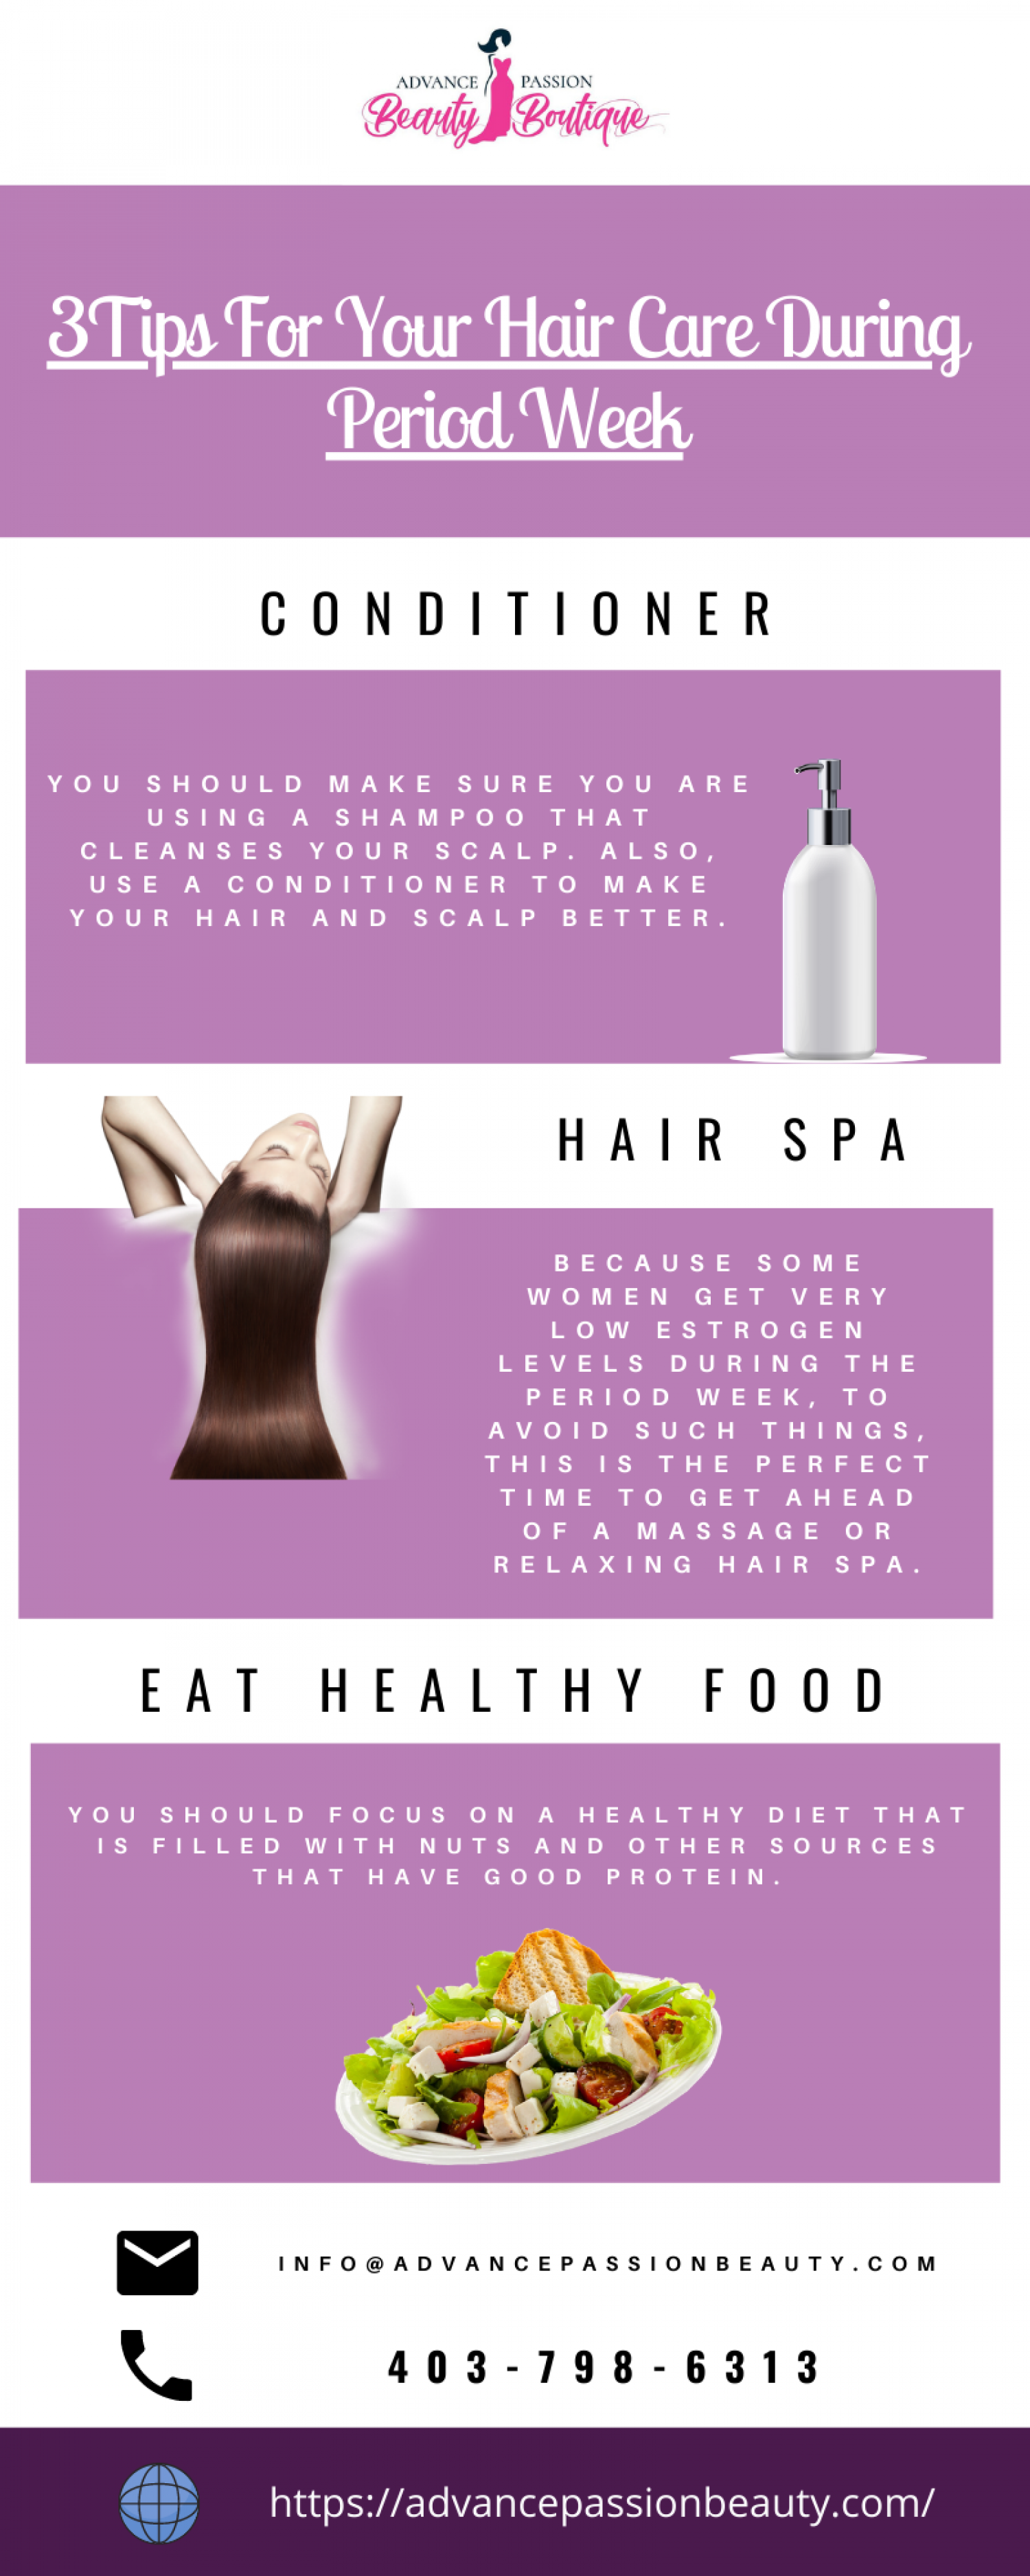 Why Hair Care Is Important During Period Week. Infographic